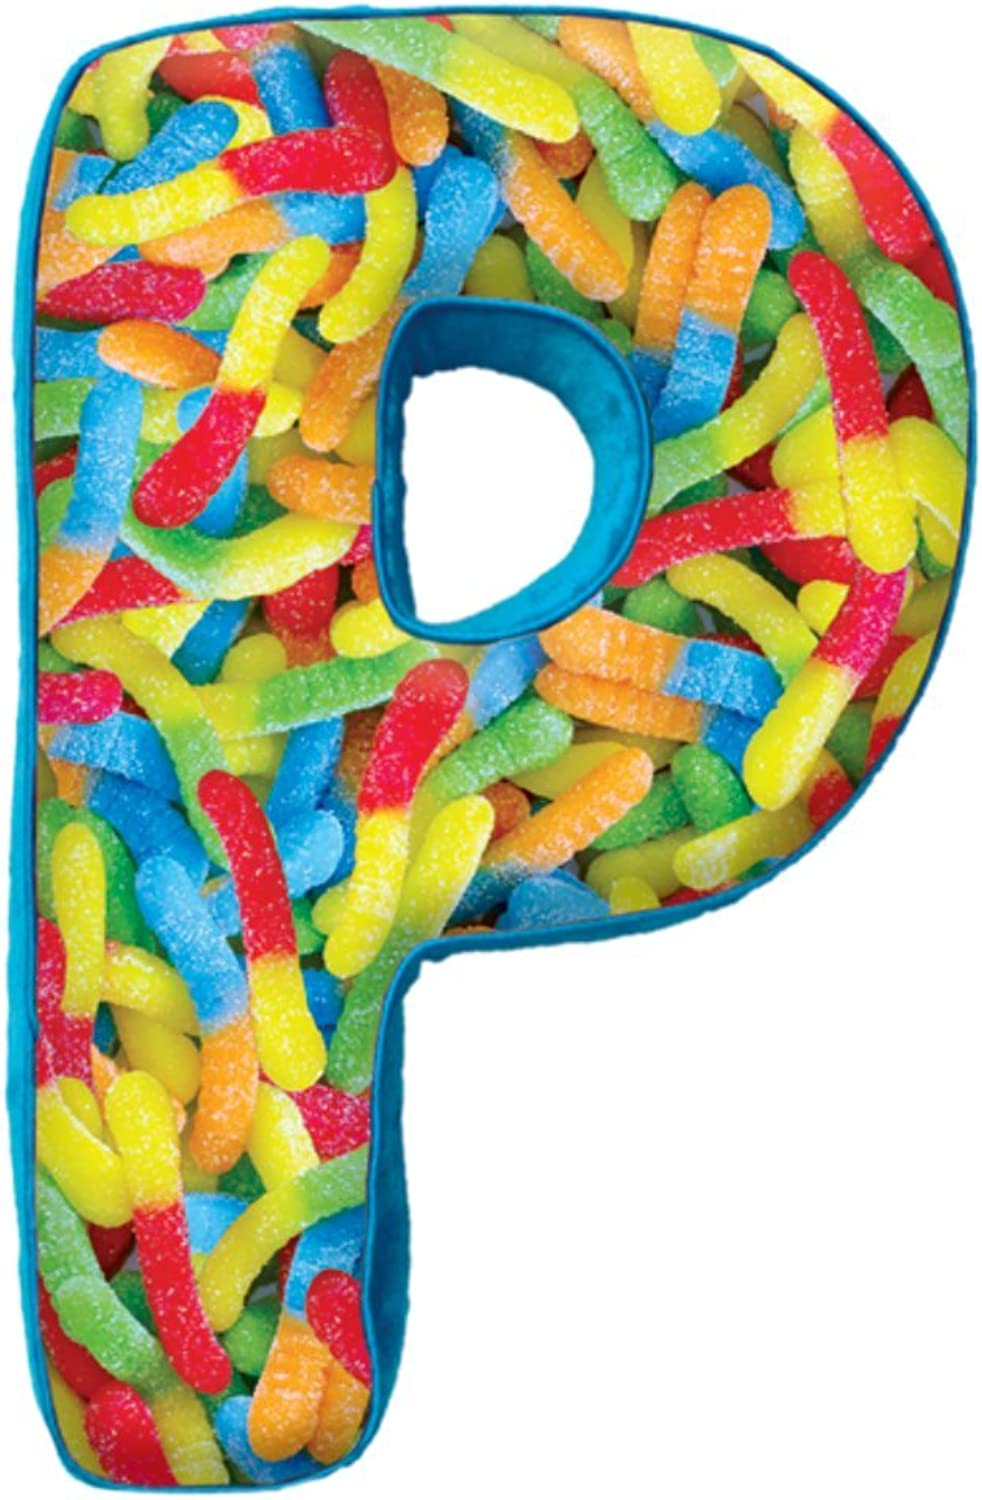 Iscream   Microbead Fleece-Backed Letter P Initial Pillow